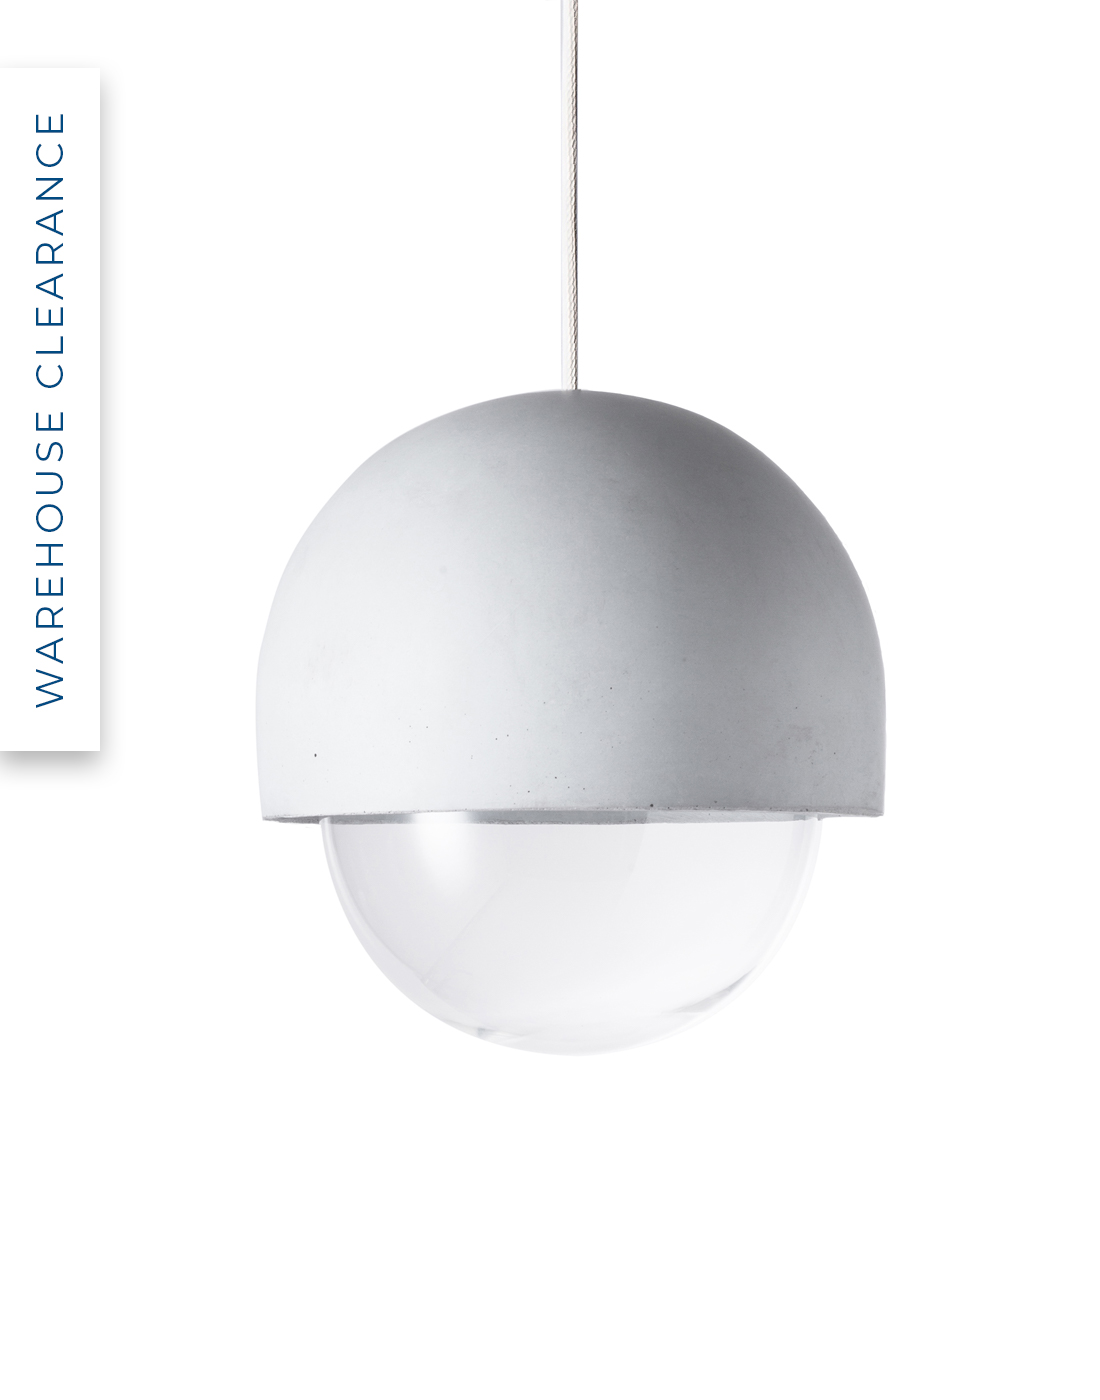 Cast pendant by Petite Friture with 40% off